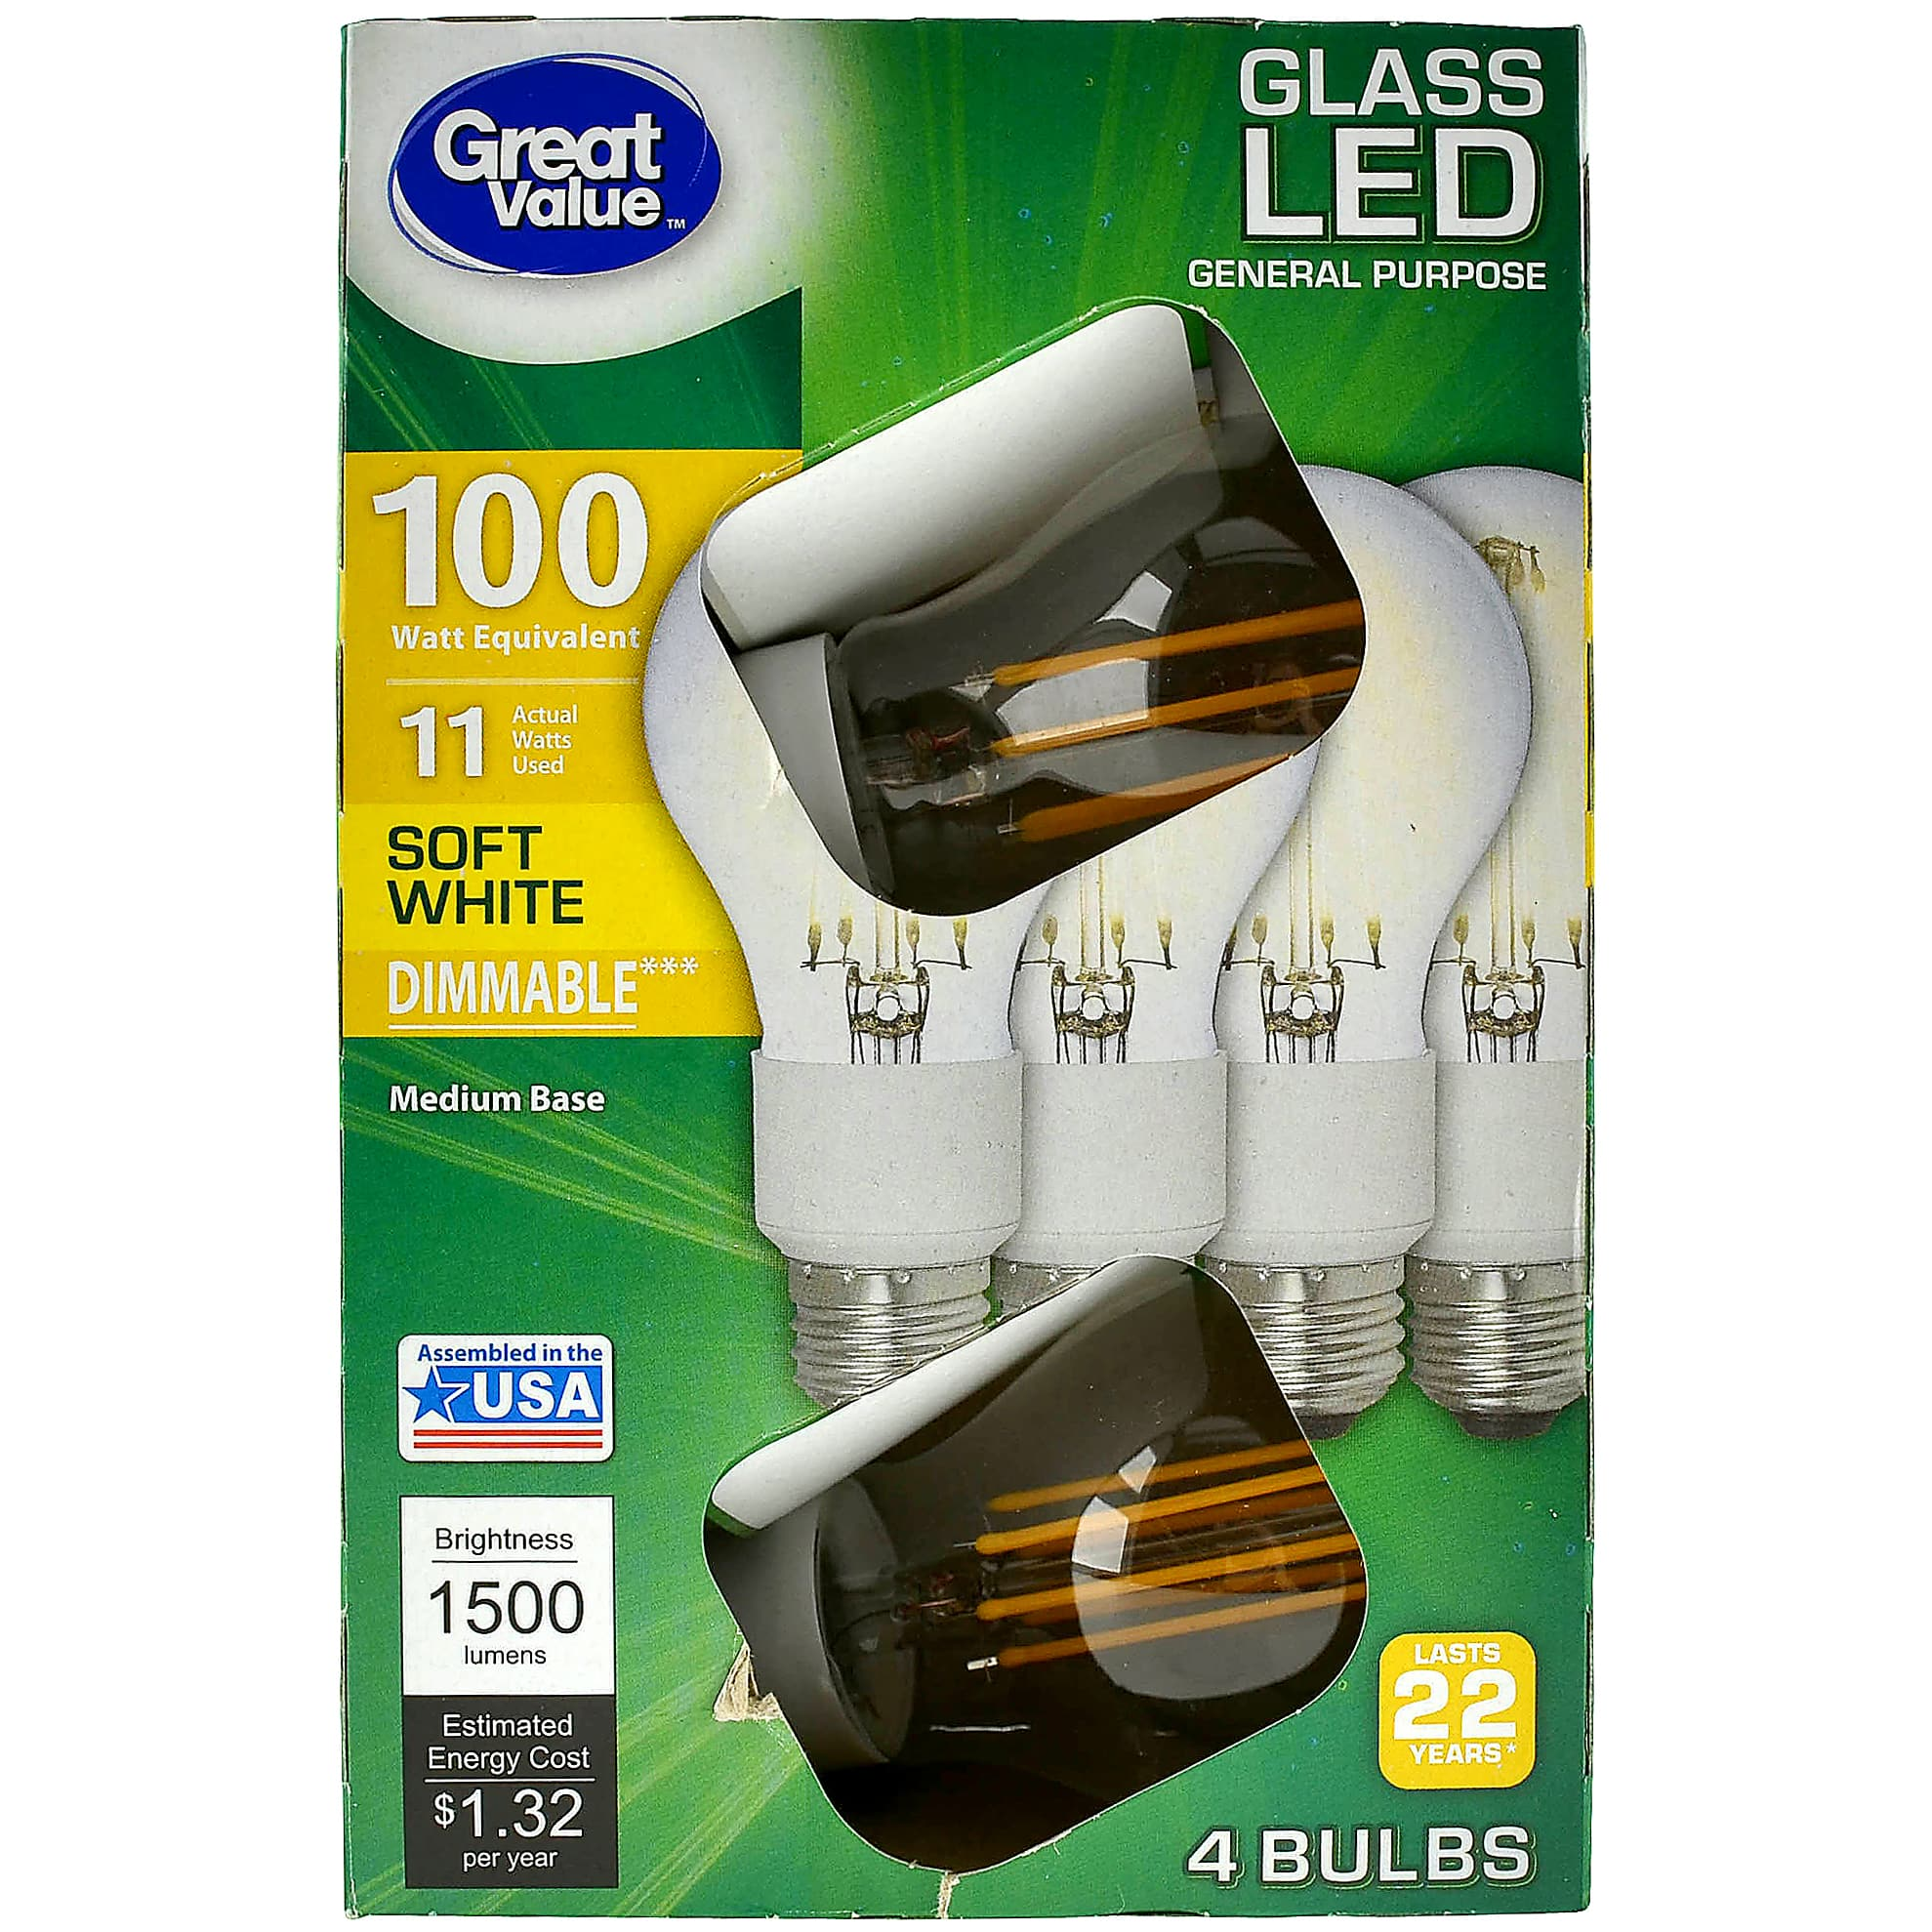 Great Value and GE 100W Equivalent A21 LED Light Bulbs, Edison Glass, Dimmable, Soft White, 4-Pack at Walmart Neighborhood Market $5